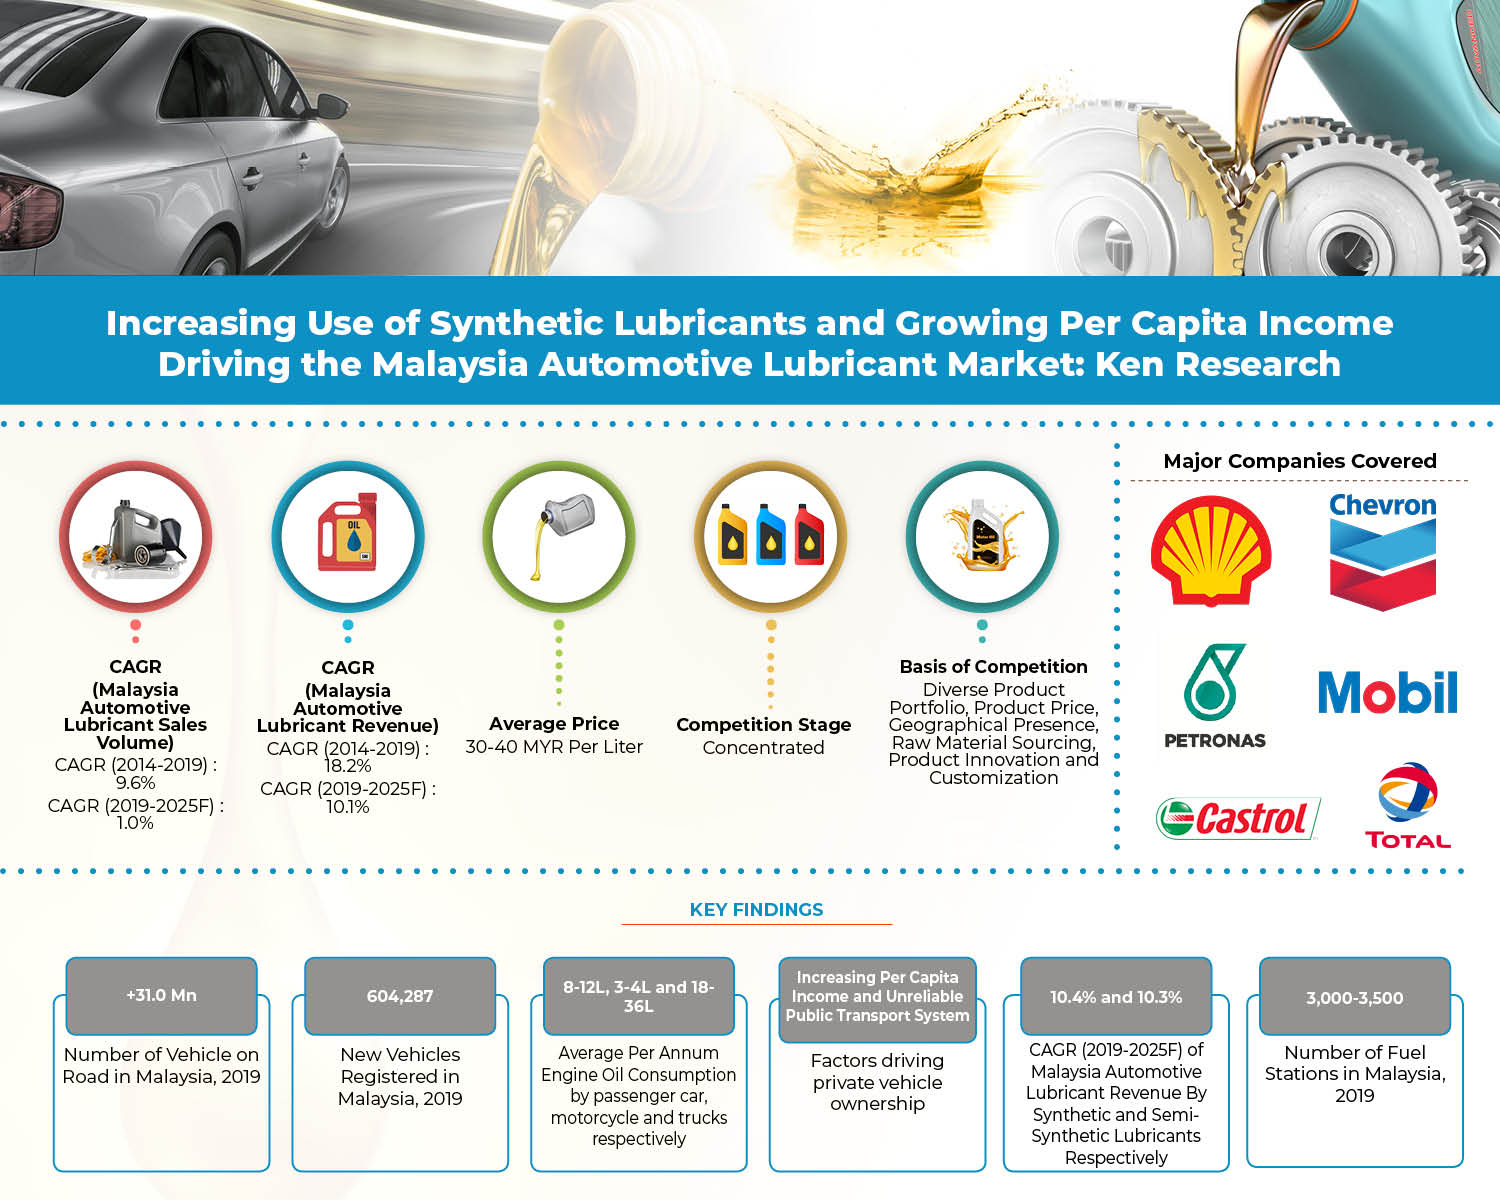 Automotive Lubricant Marketing Strategies Malaysia Shell Synthetic Lubricant Market Revenue Covid 19 Impact On Automotive Lubricant Castrol Automotive Lubricant Market Analysis Ken Research